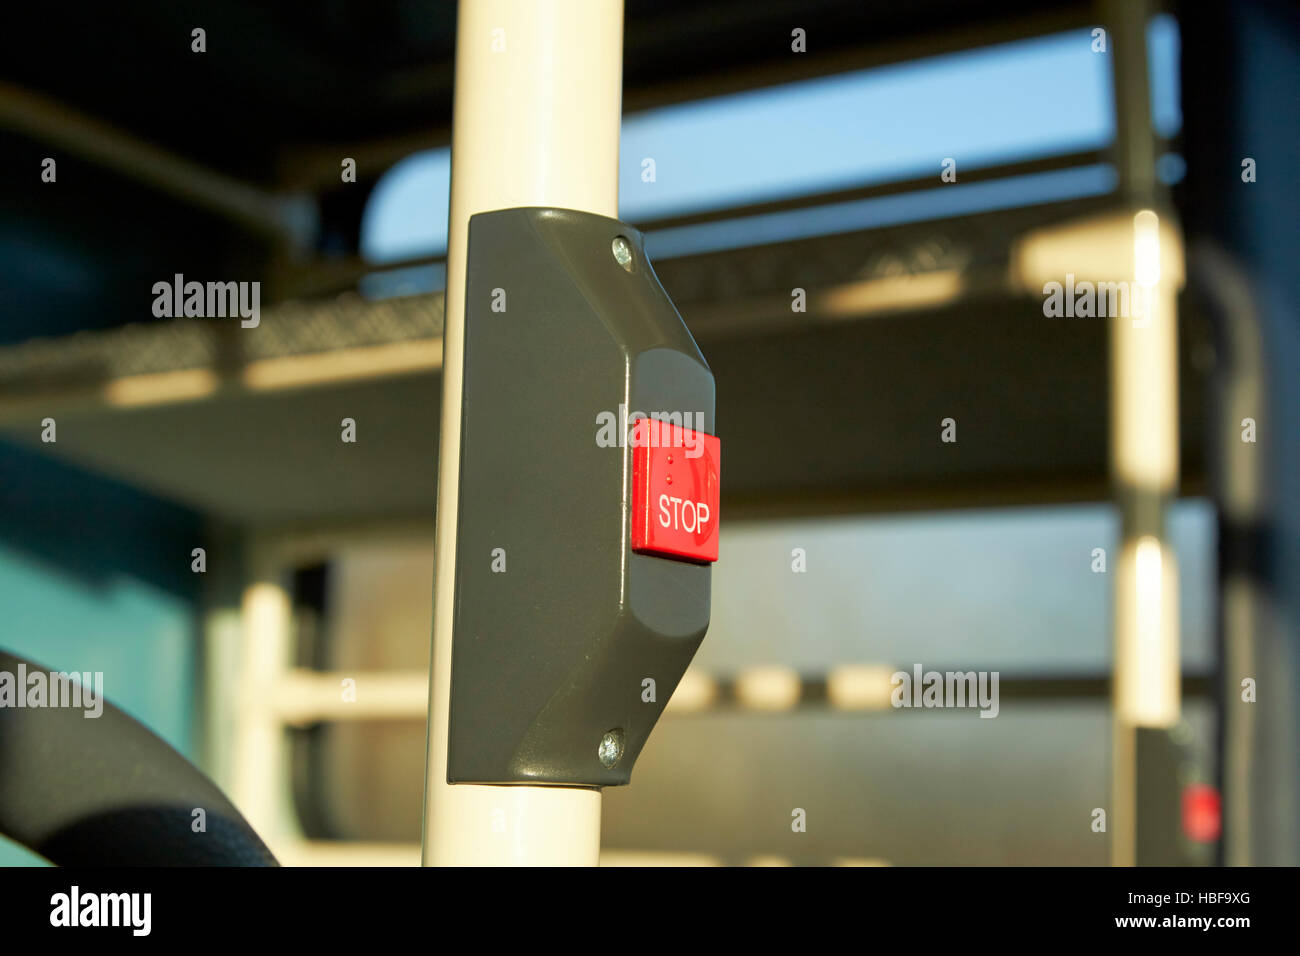 red request stop push button with braille - Stock Image